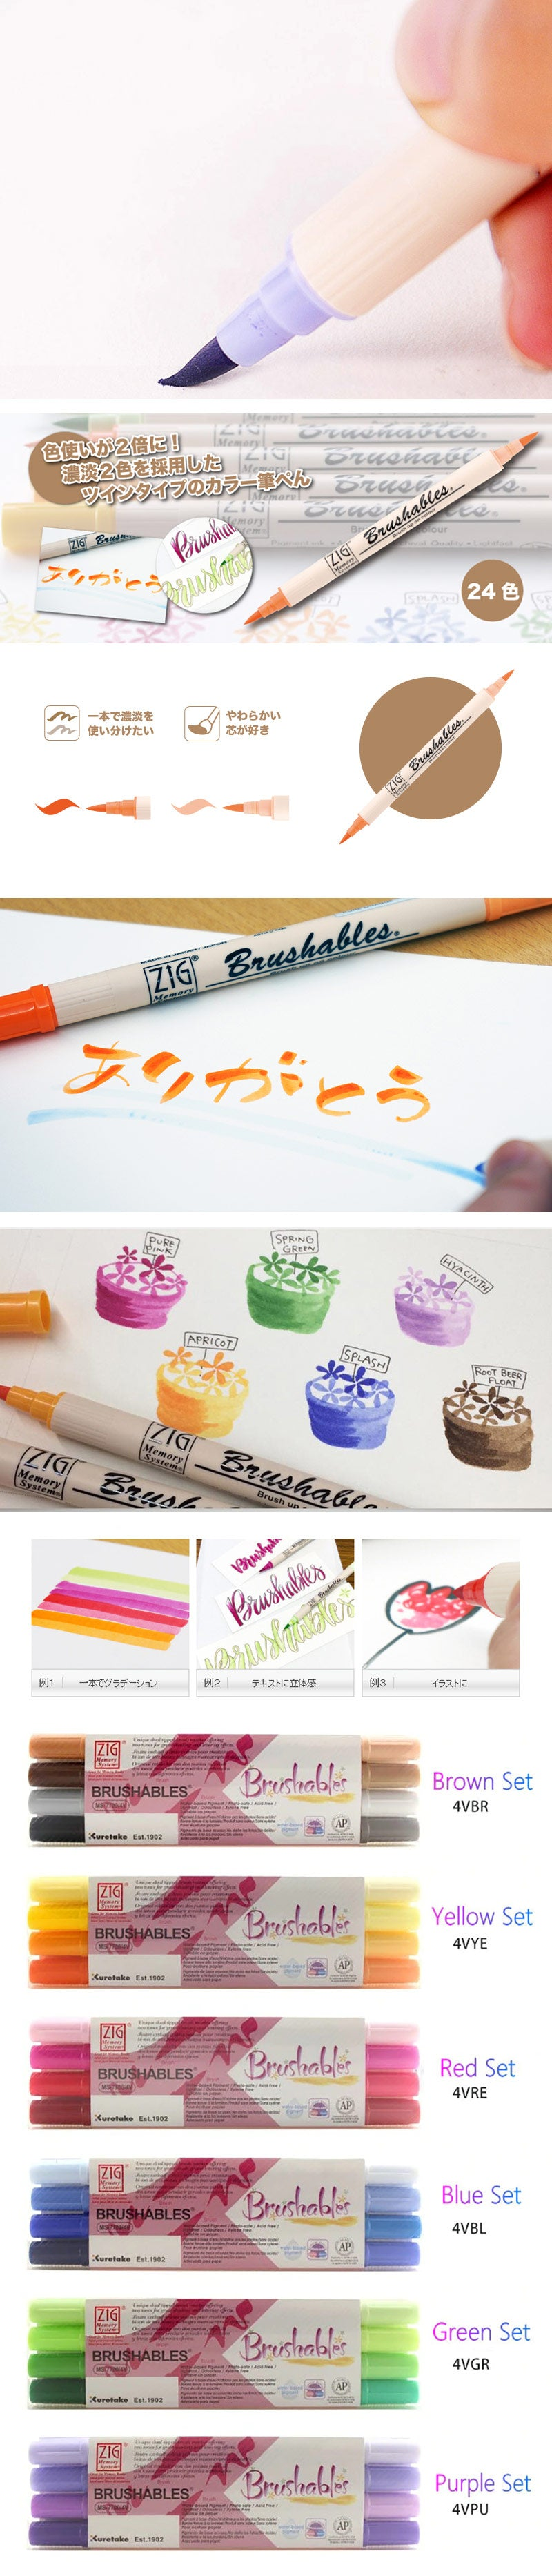 Kuretake ZIG Memory System Brushables Watercolor Brush Pen - Usage